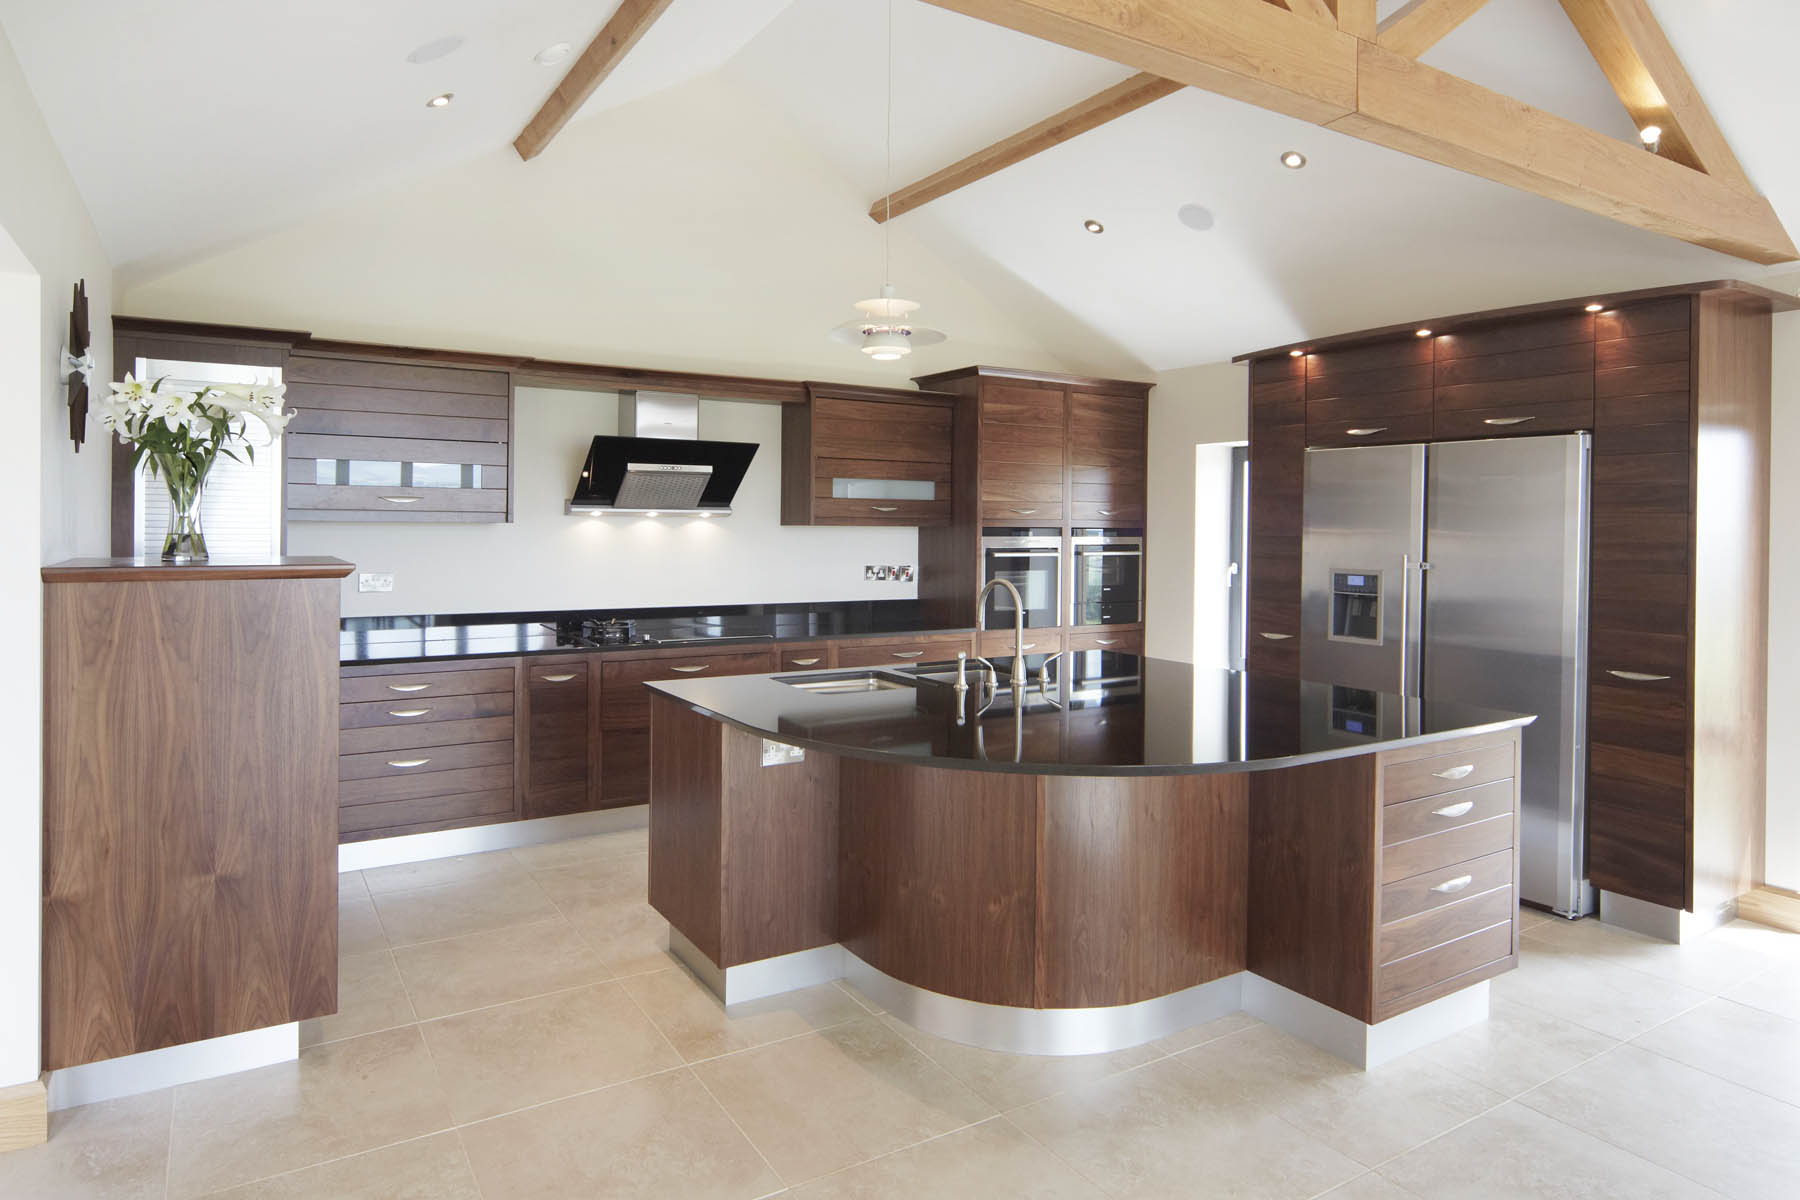 kitchens california remodeling inc simple kitchen design for small house kitchen kitchen